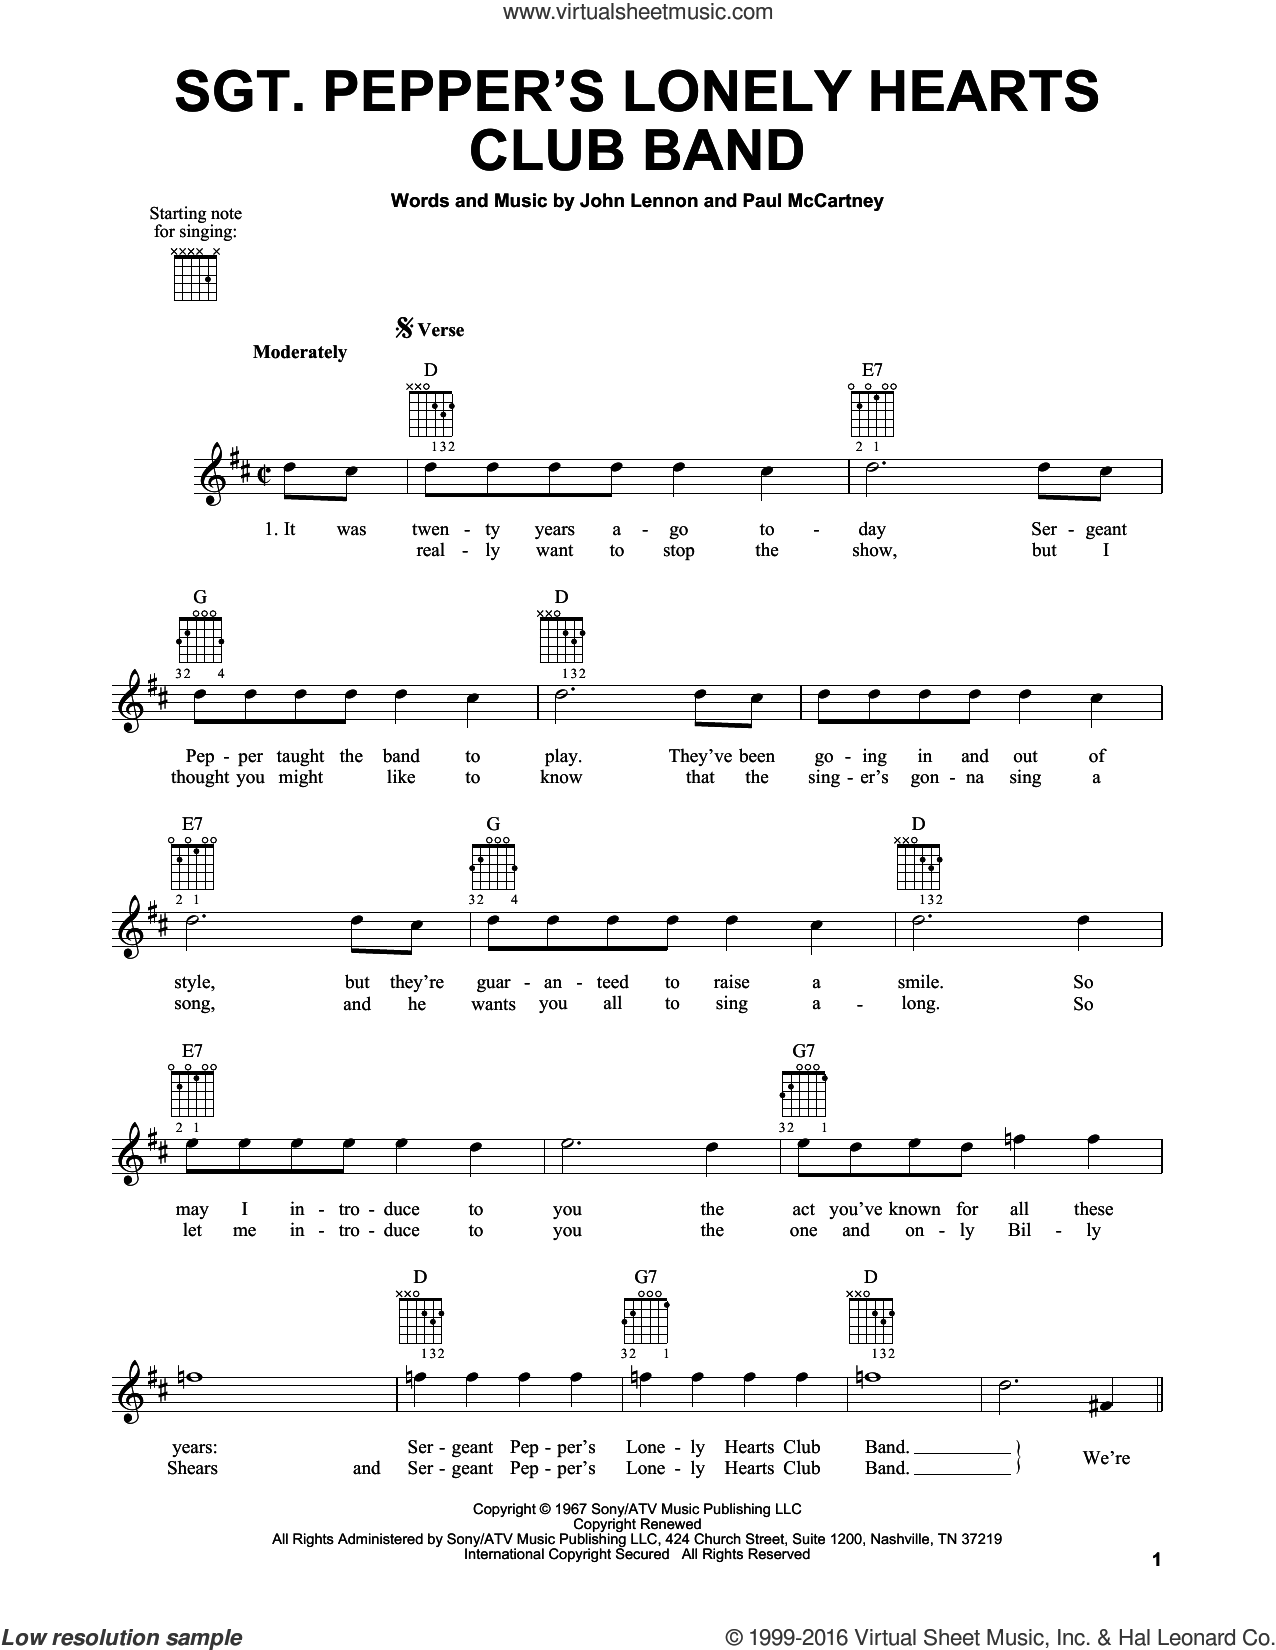 Sgt. Pepper's Lonely Hearts Club Band sheet music for guitar solo (chords) by Paul McCartney